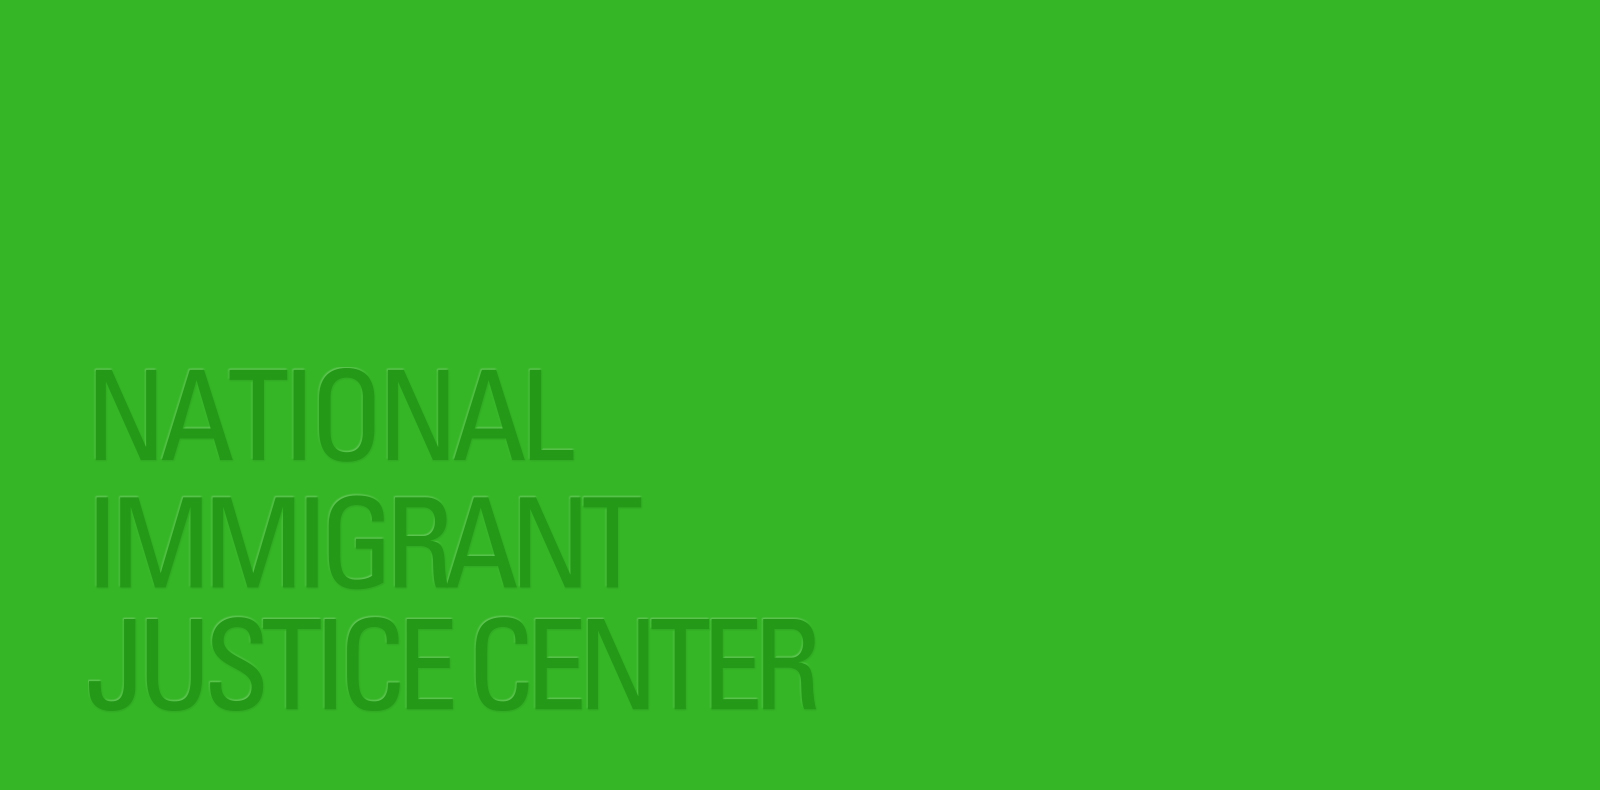 NIJC Staff | National Immigrant Justice Center